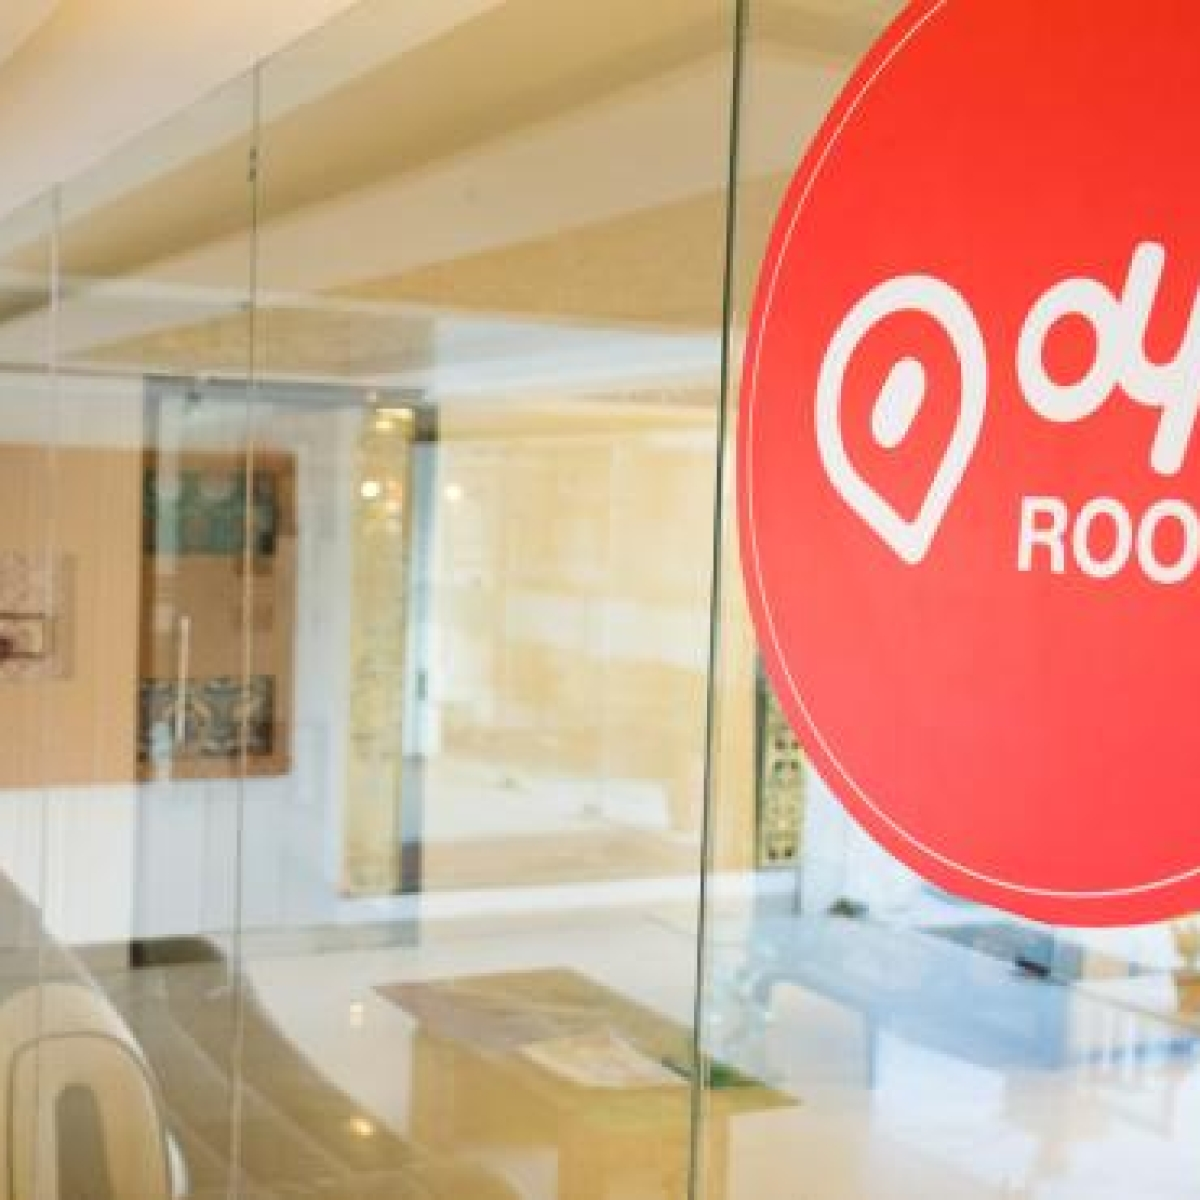 OYO hotels enter strategic partnership with China's Meituan